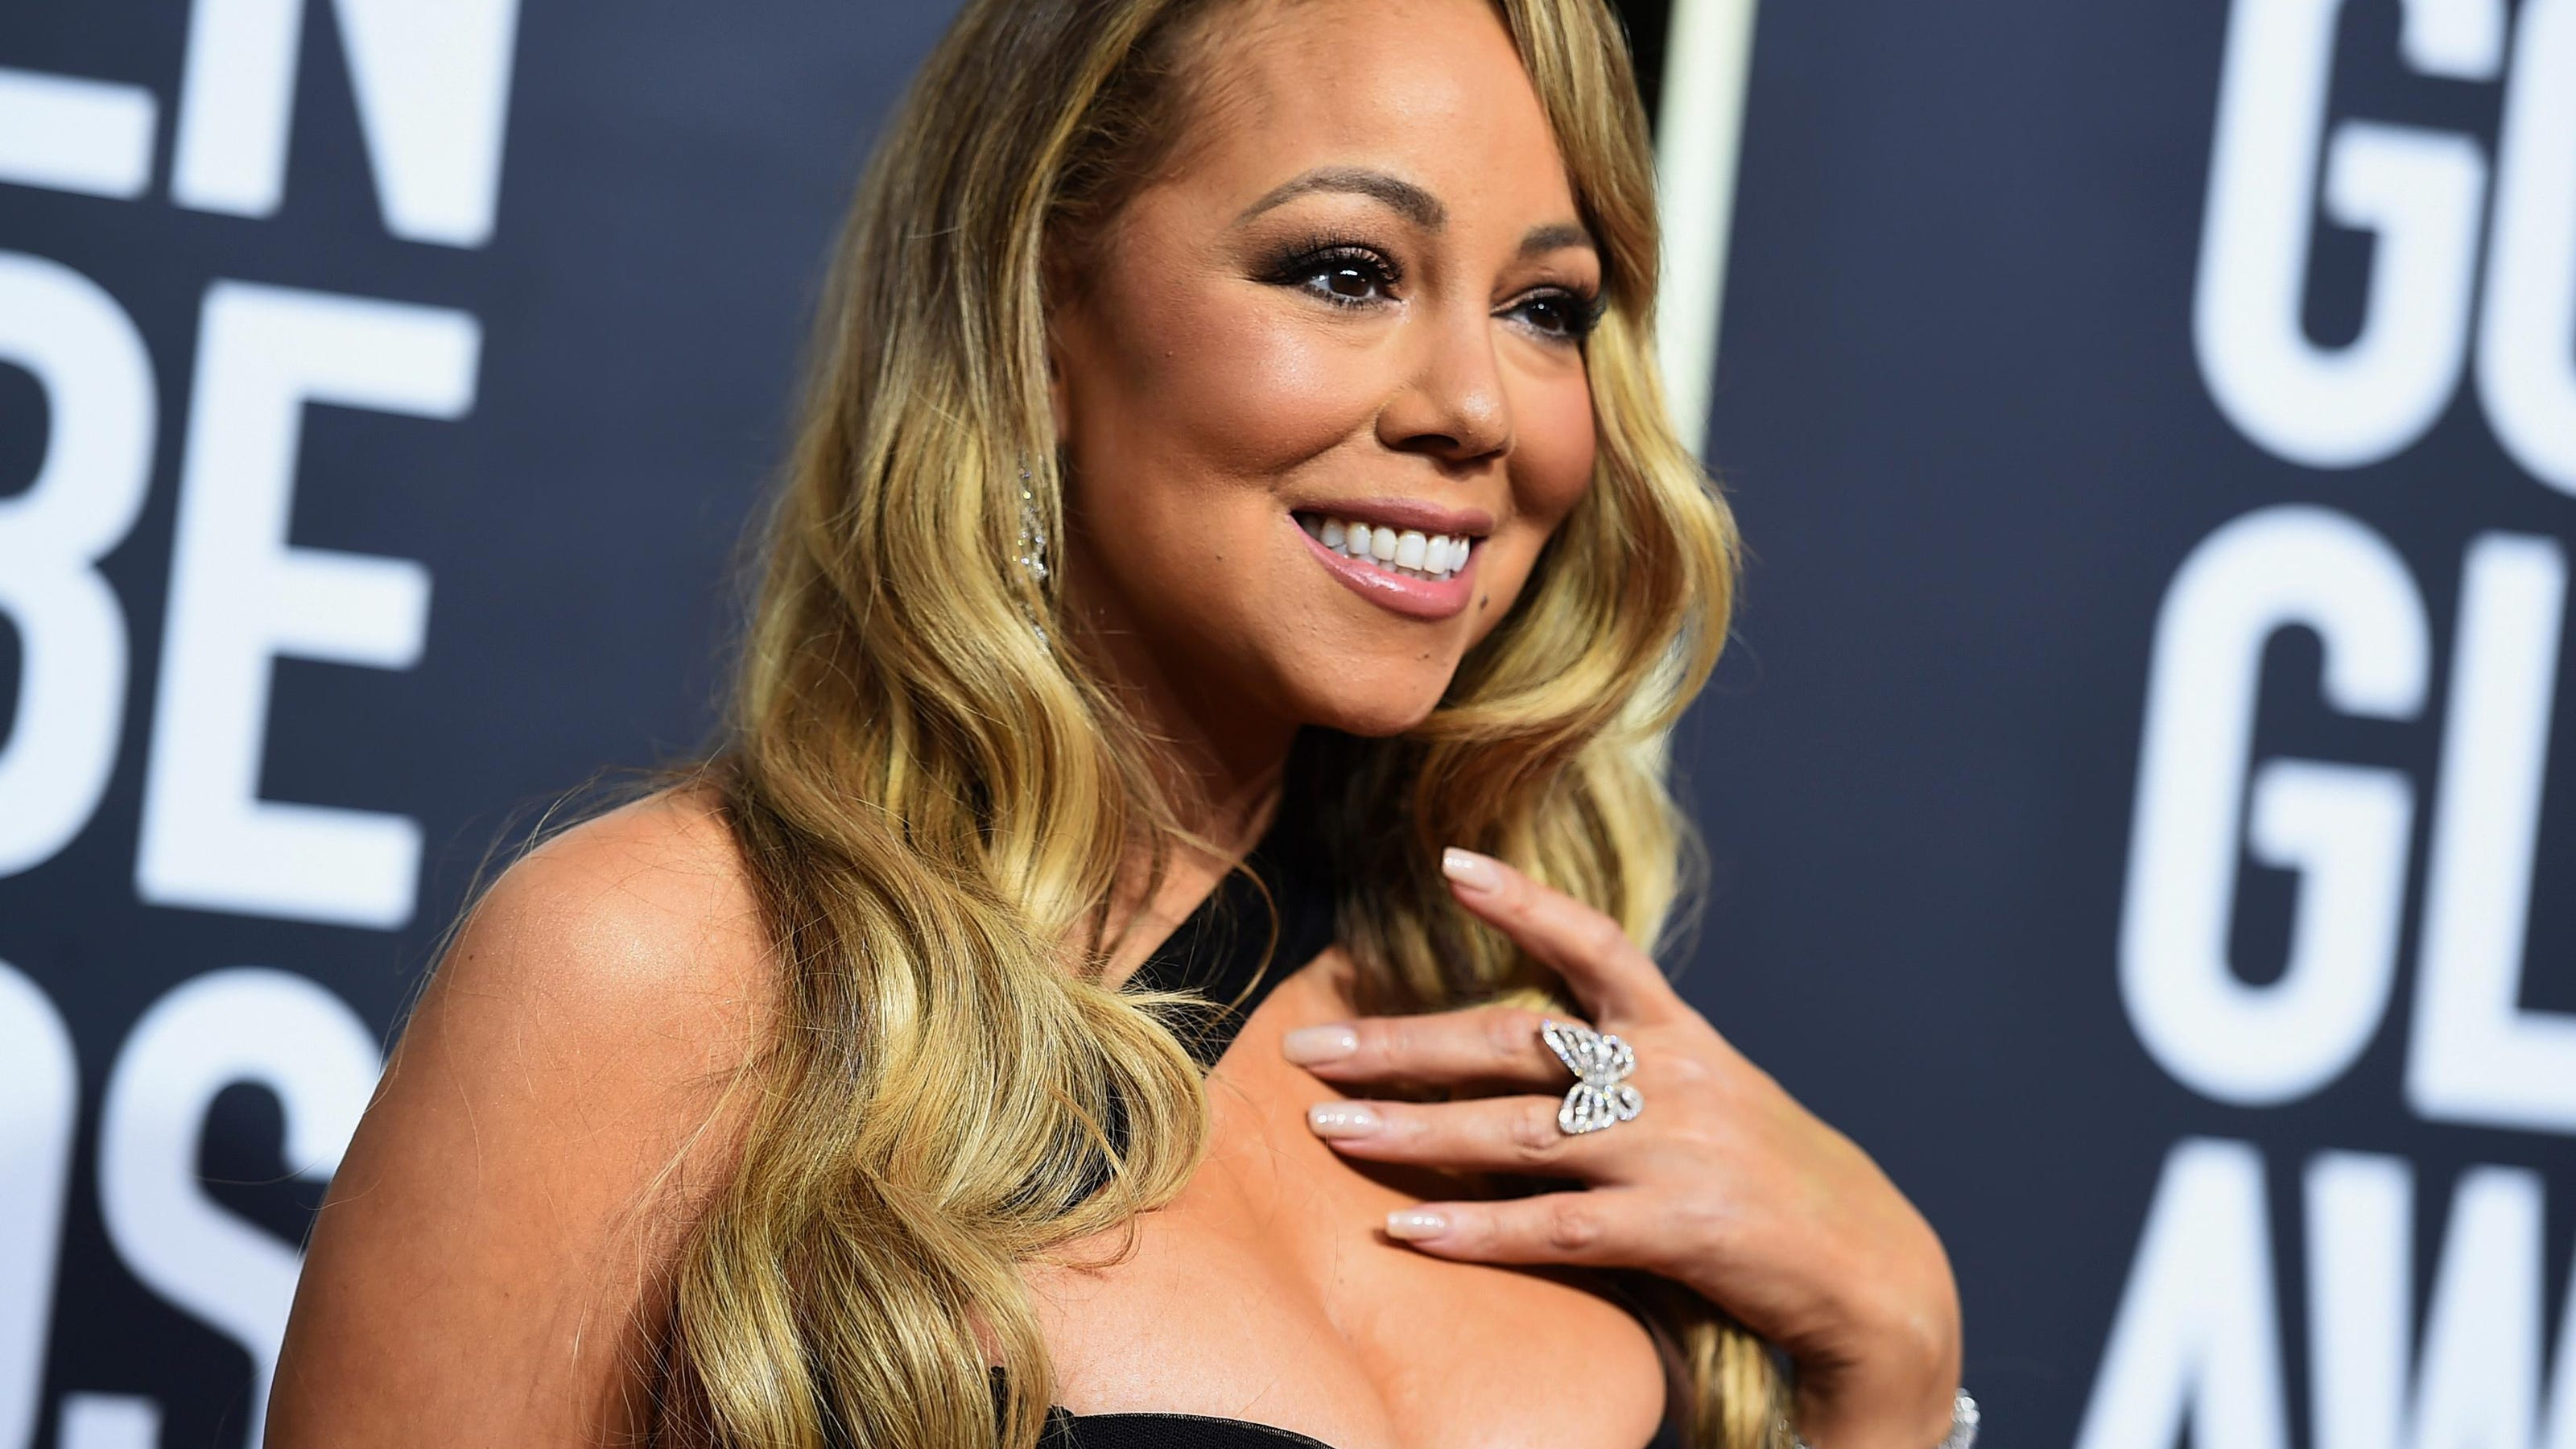 Mariah Carey says miscarriage happened after Ellen DeGeneres needled her about pregnancy